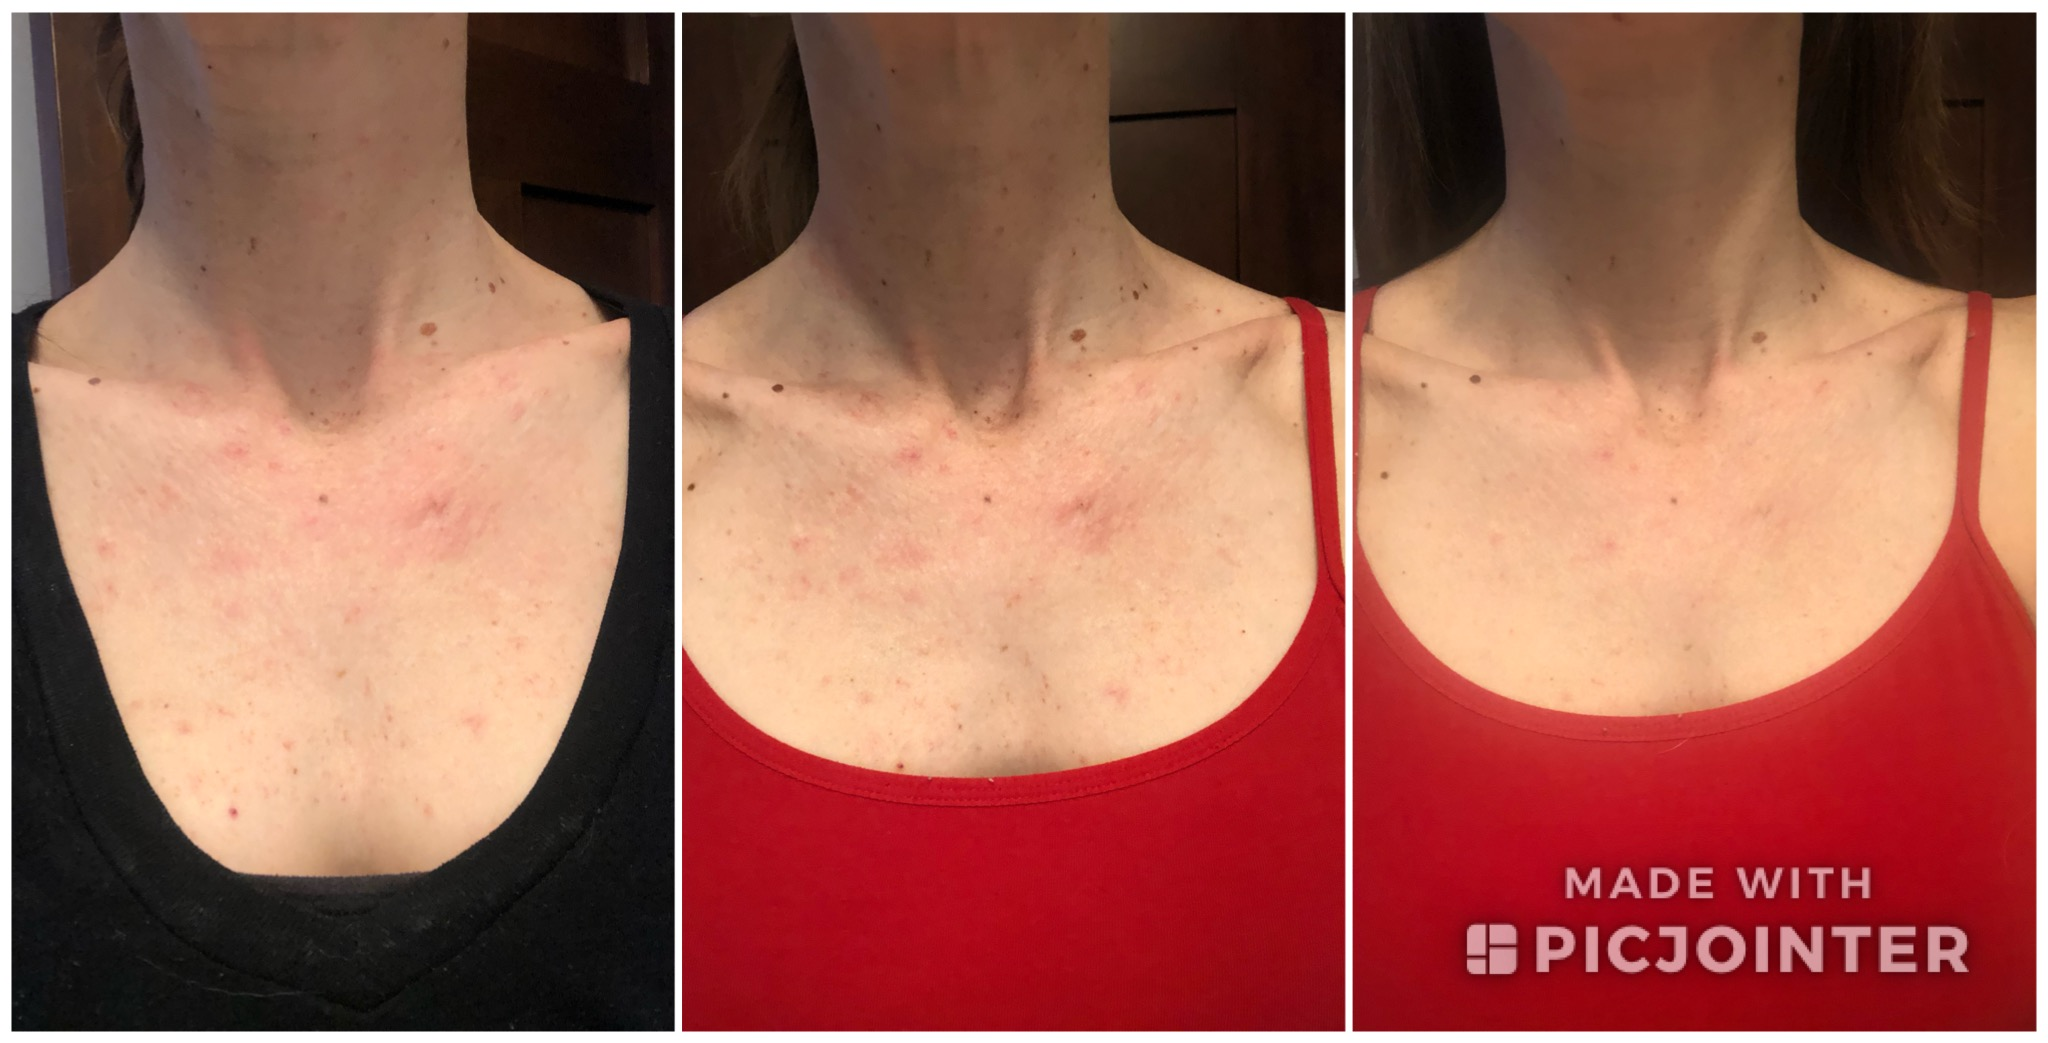 Progression over the first week after my second treatment.